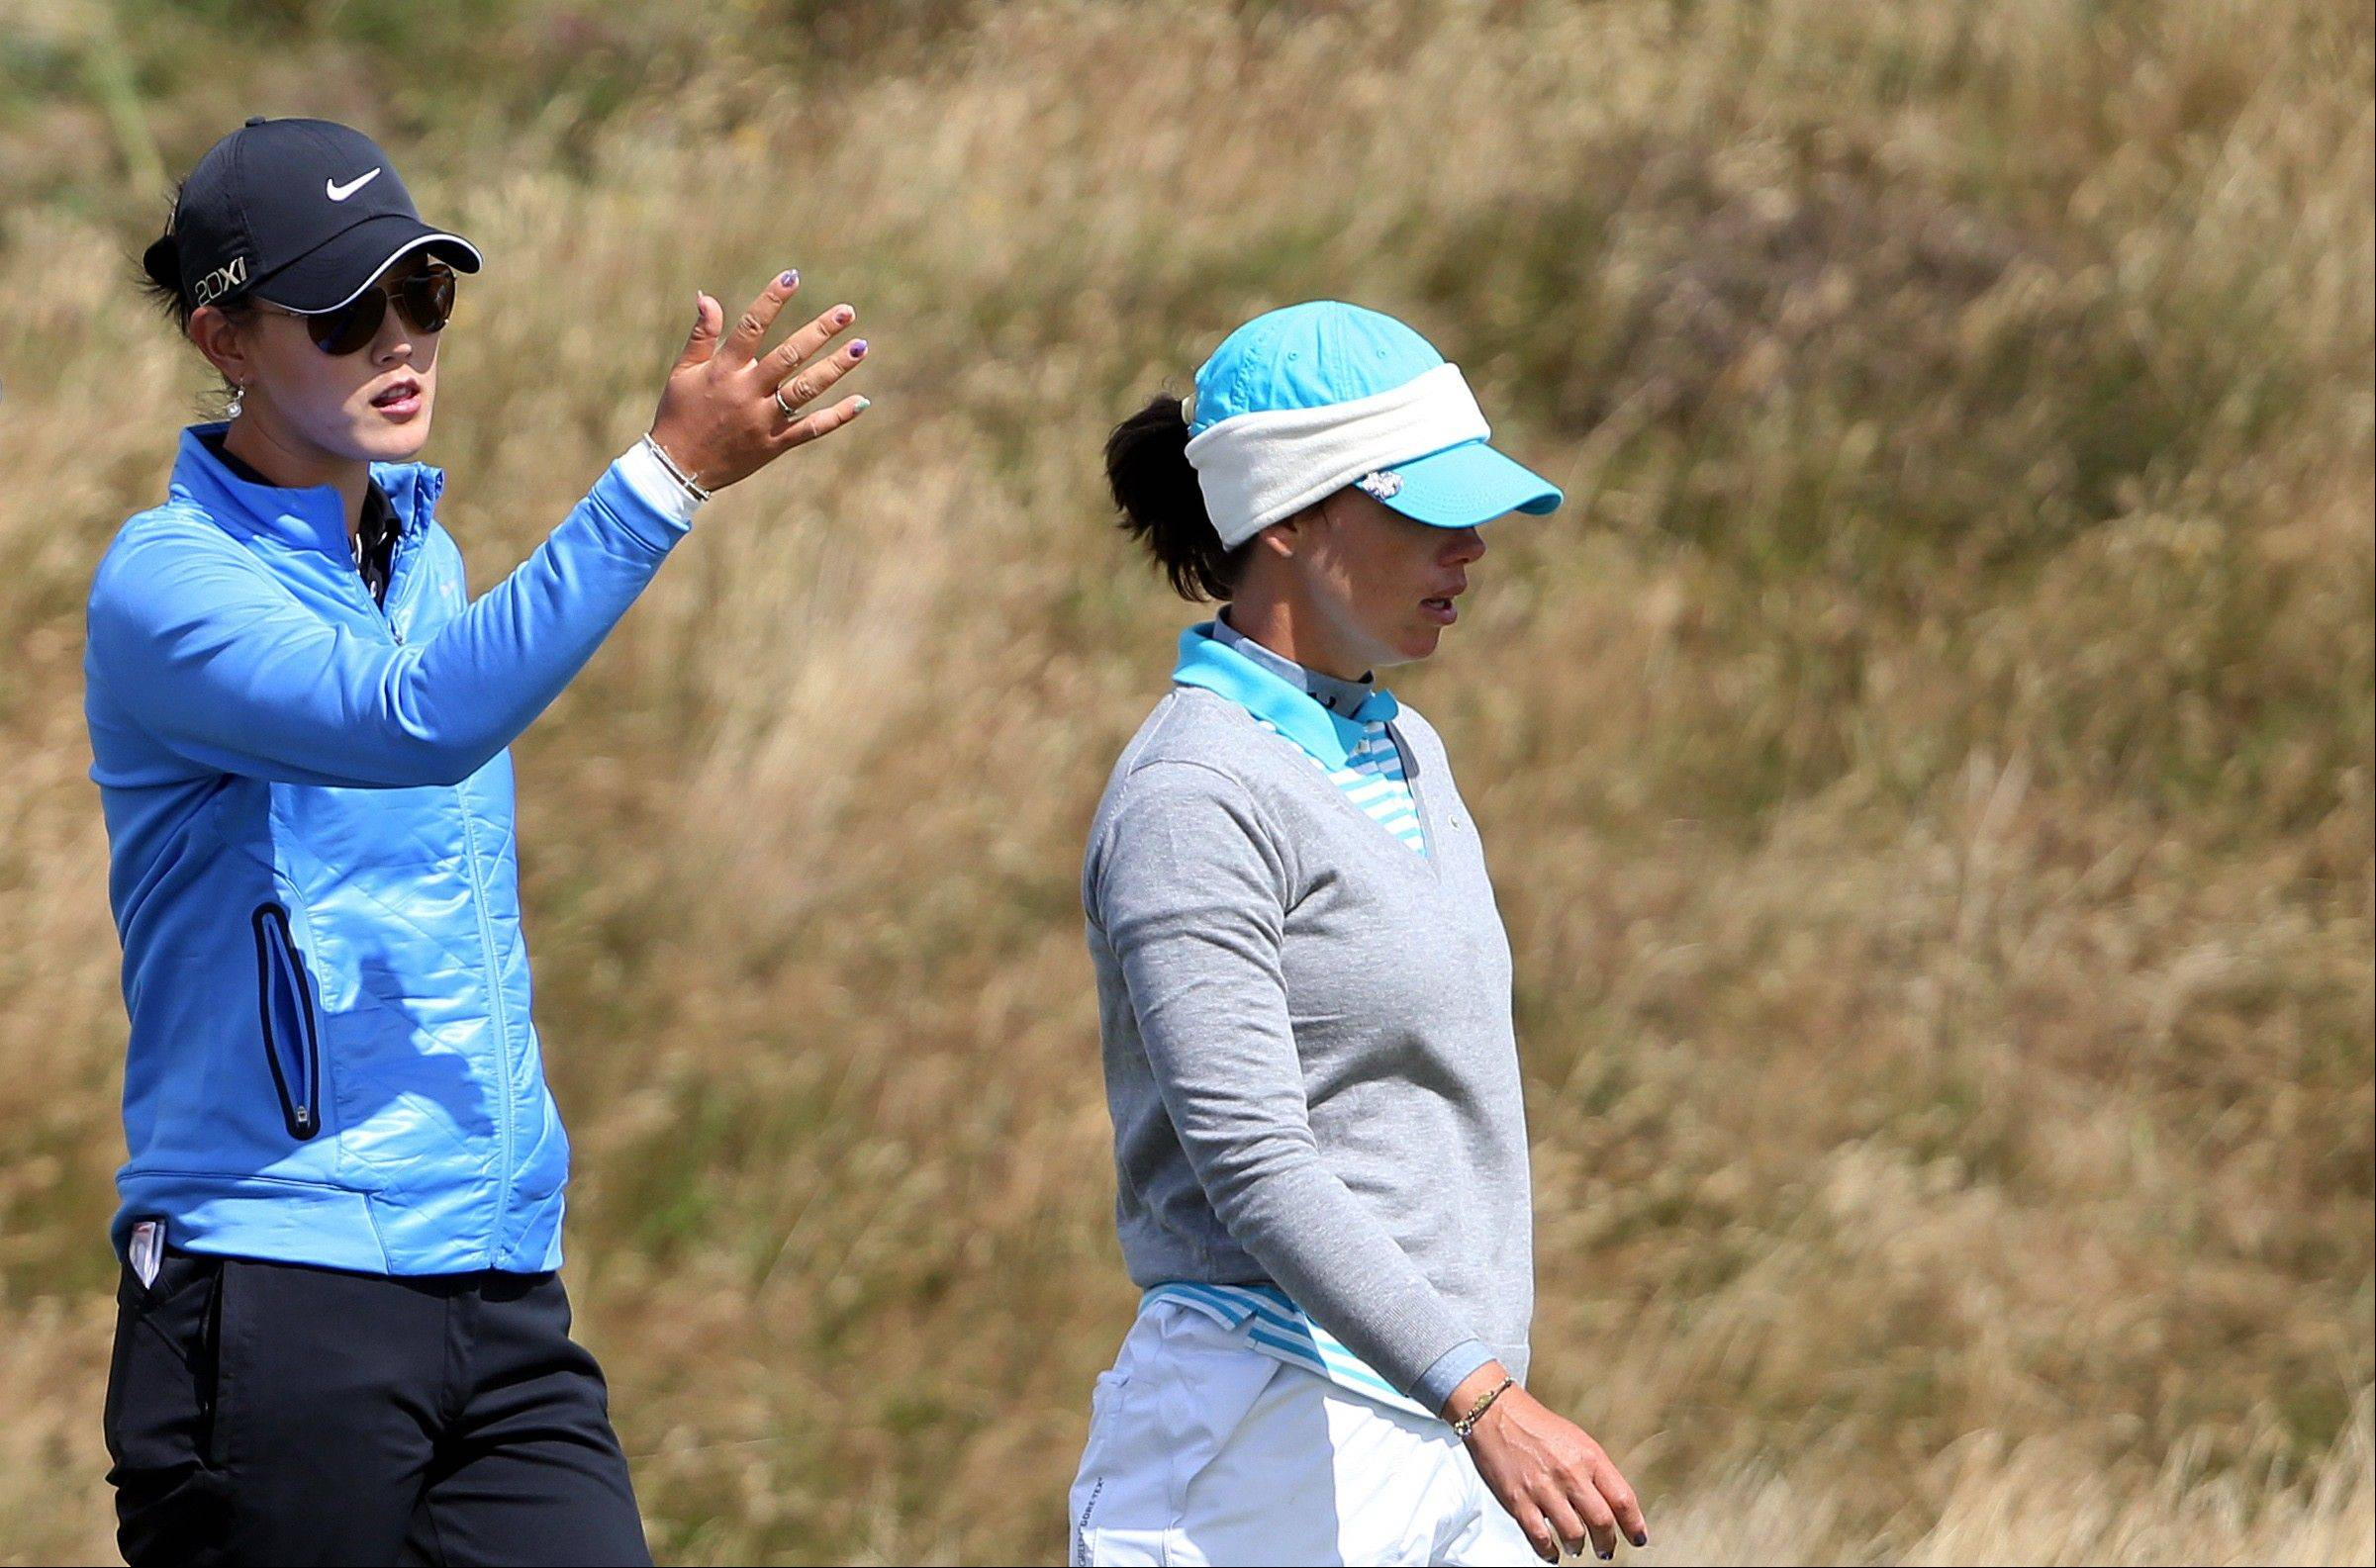 Michelle Wie of the US, left, reacts to France's Karine Icher, right, after play has been suspended due to the high winds on the 13th fairway during the third round of the Women's British Open golf championship on the Old Course at St Andrews, Scotland, Saturday Aug. 3, 2013. (AP Photo/Scott Heppell)